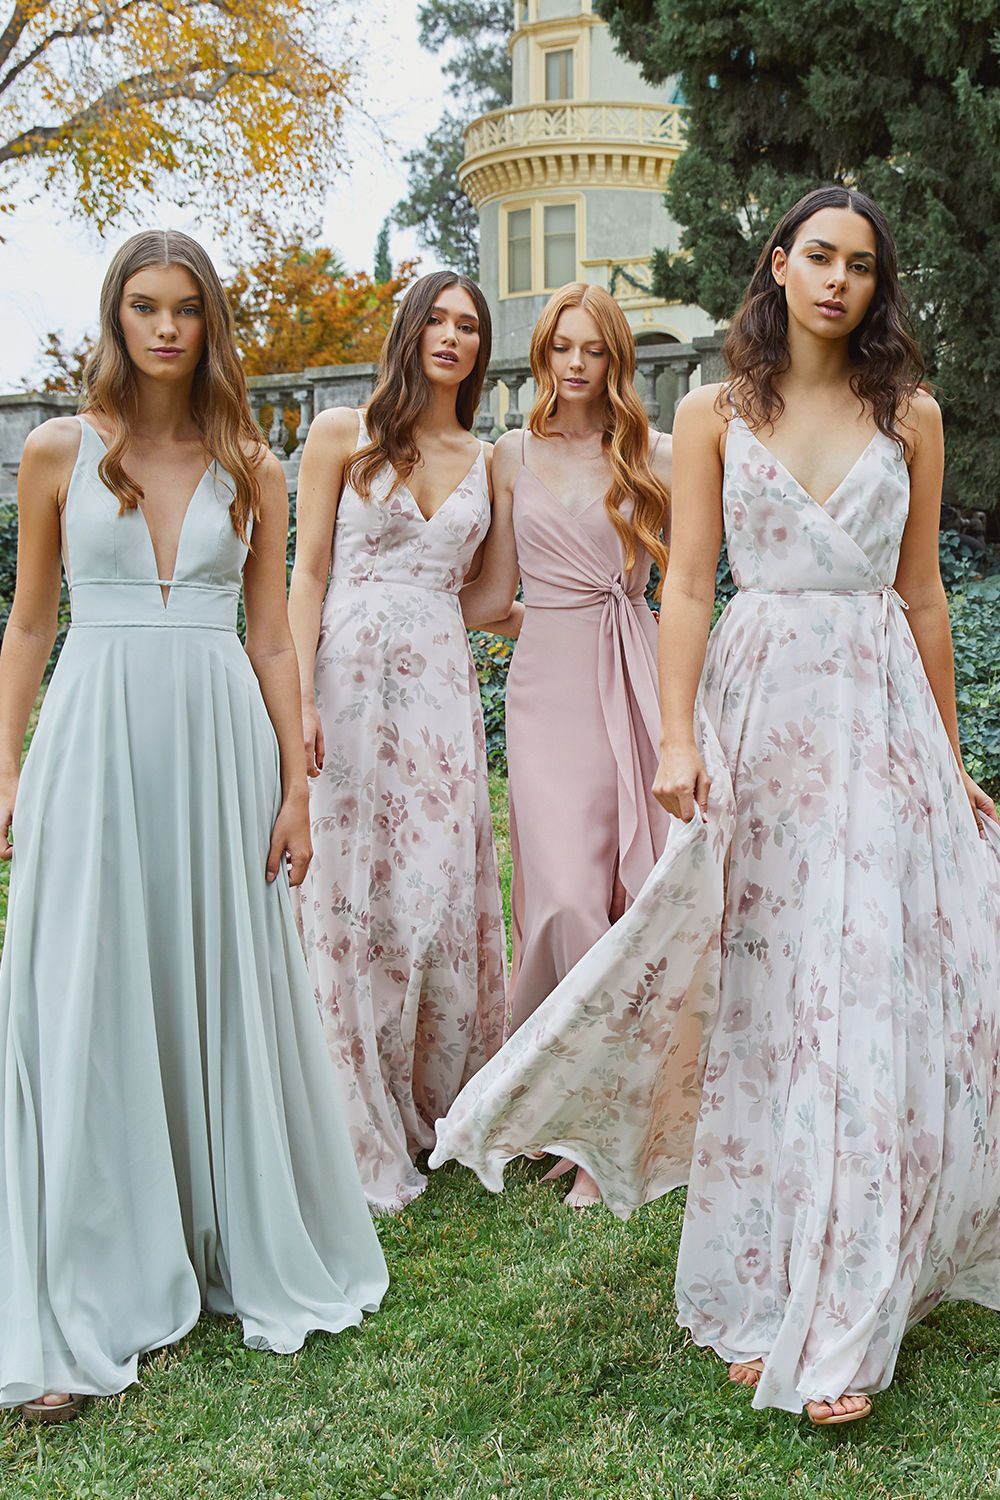 Spring_Summer 2020 Bridesmaids